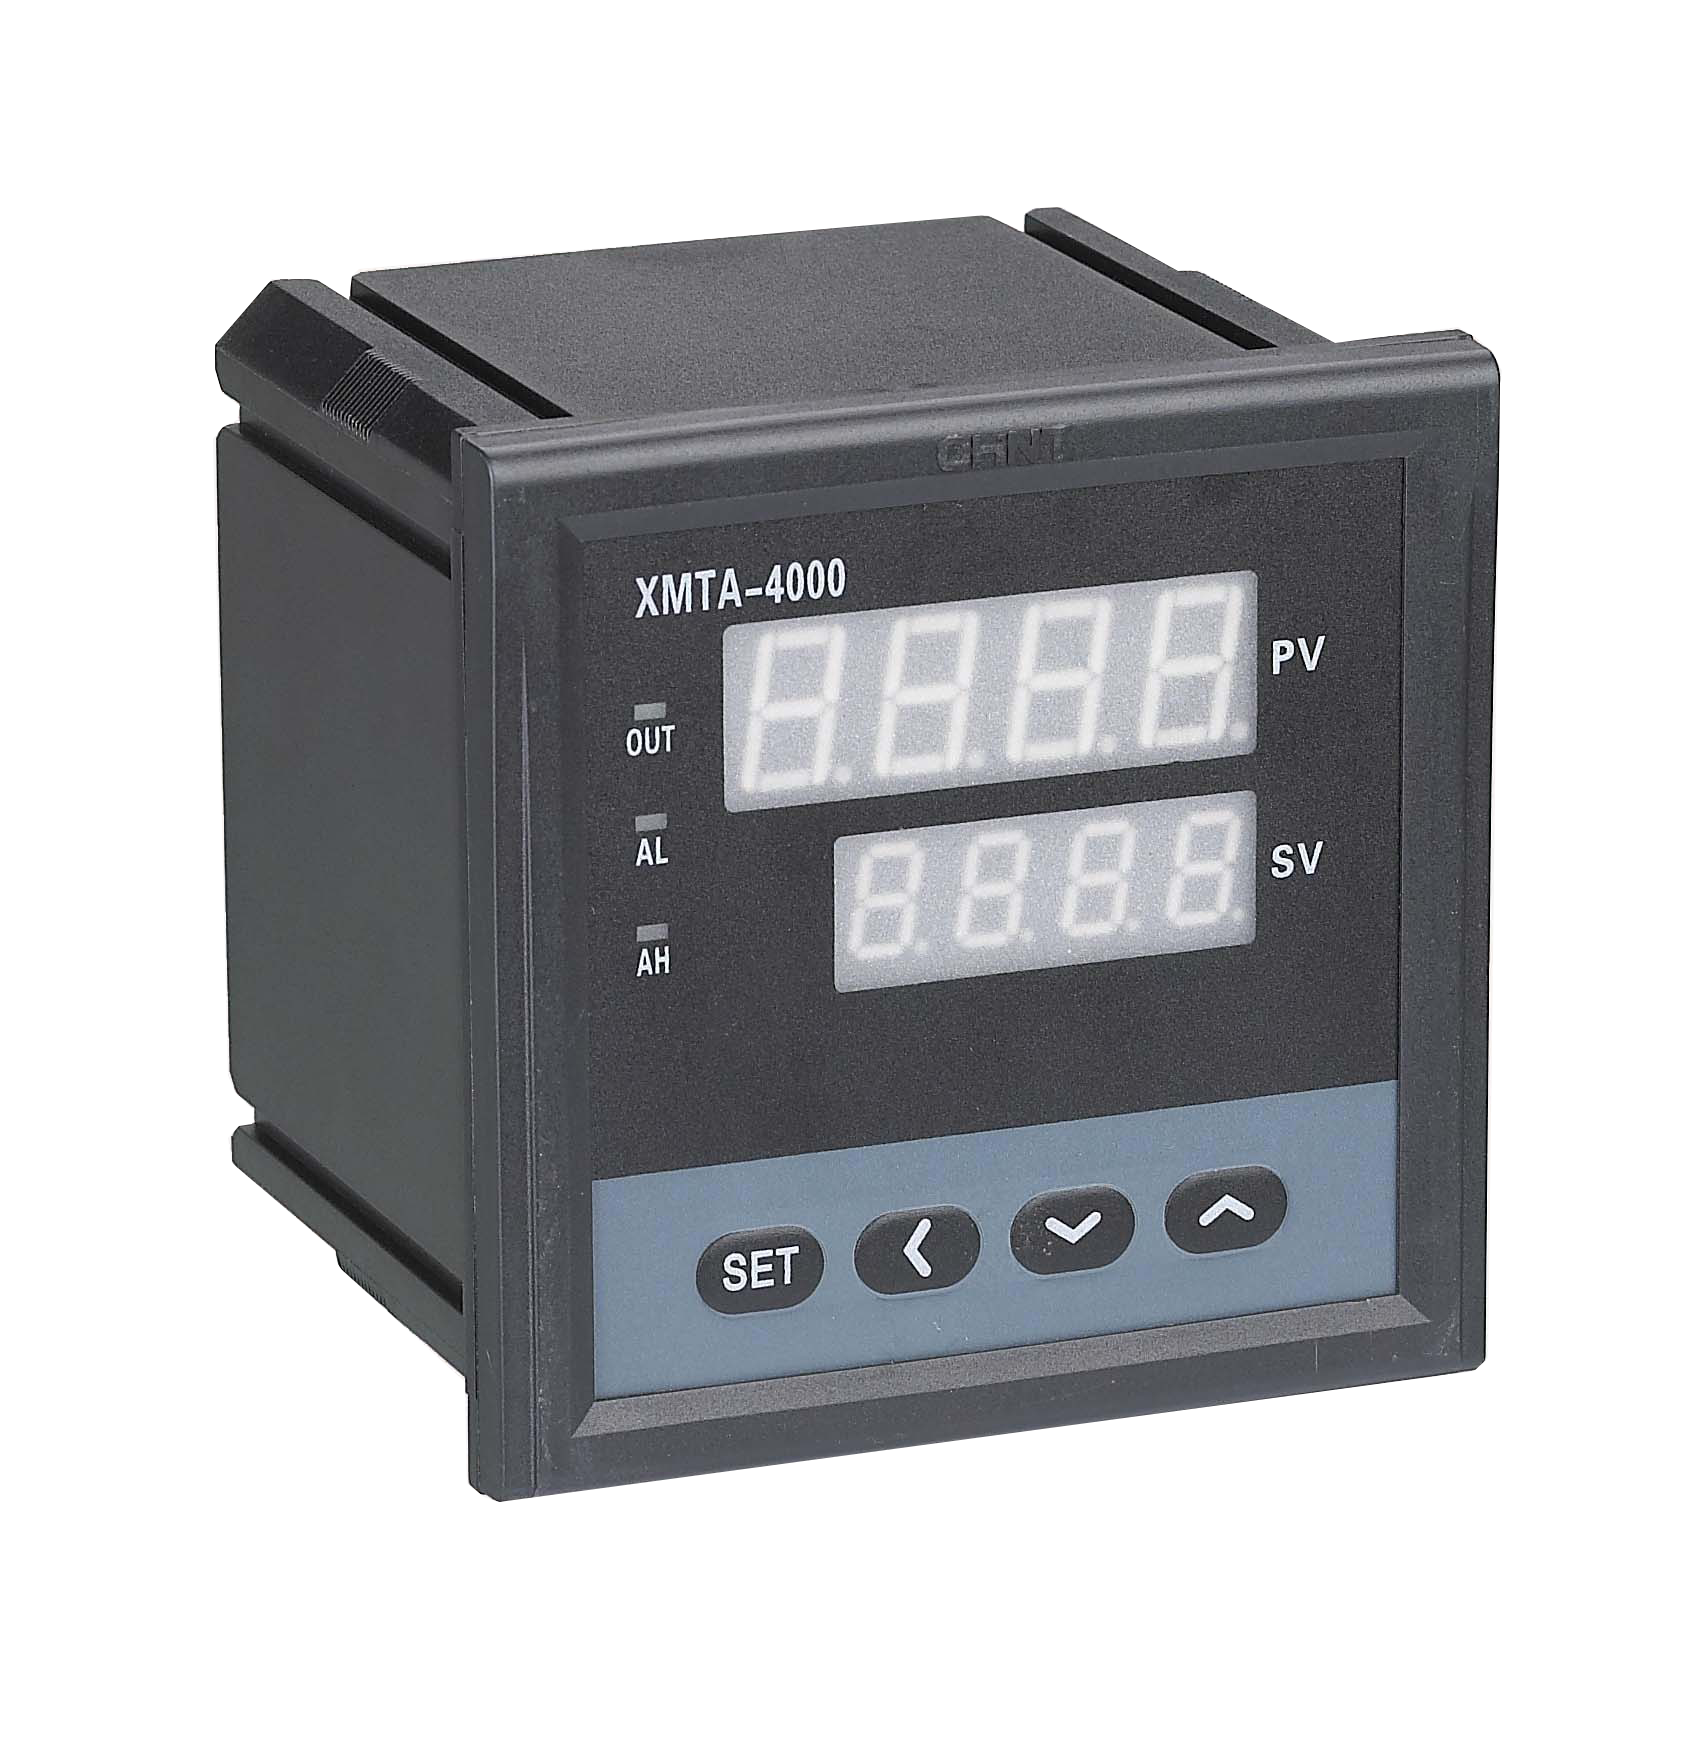 XMT-4000 series digital temperature indicating regulators